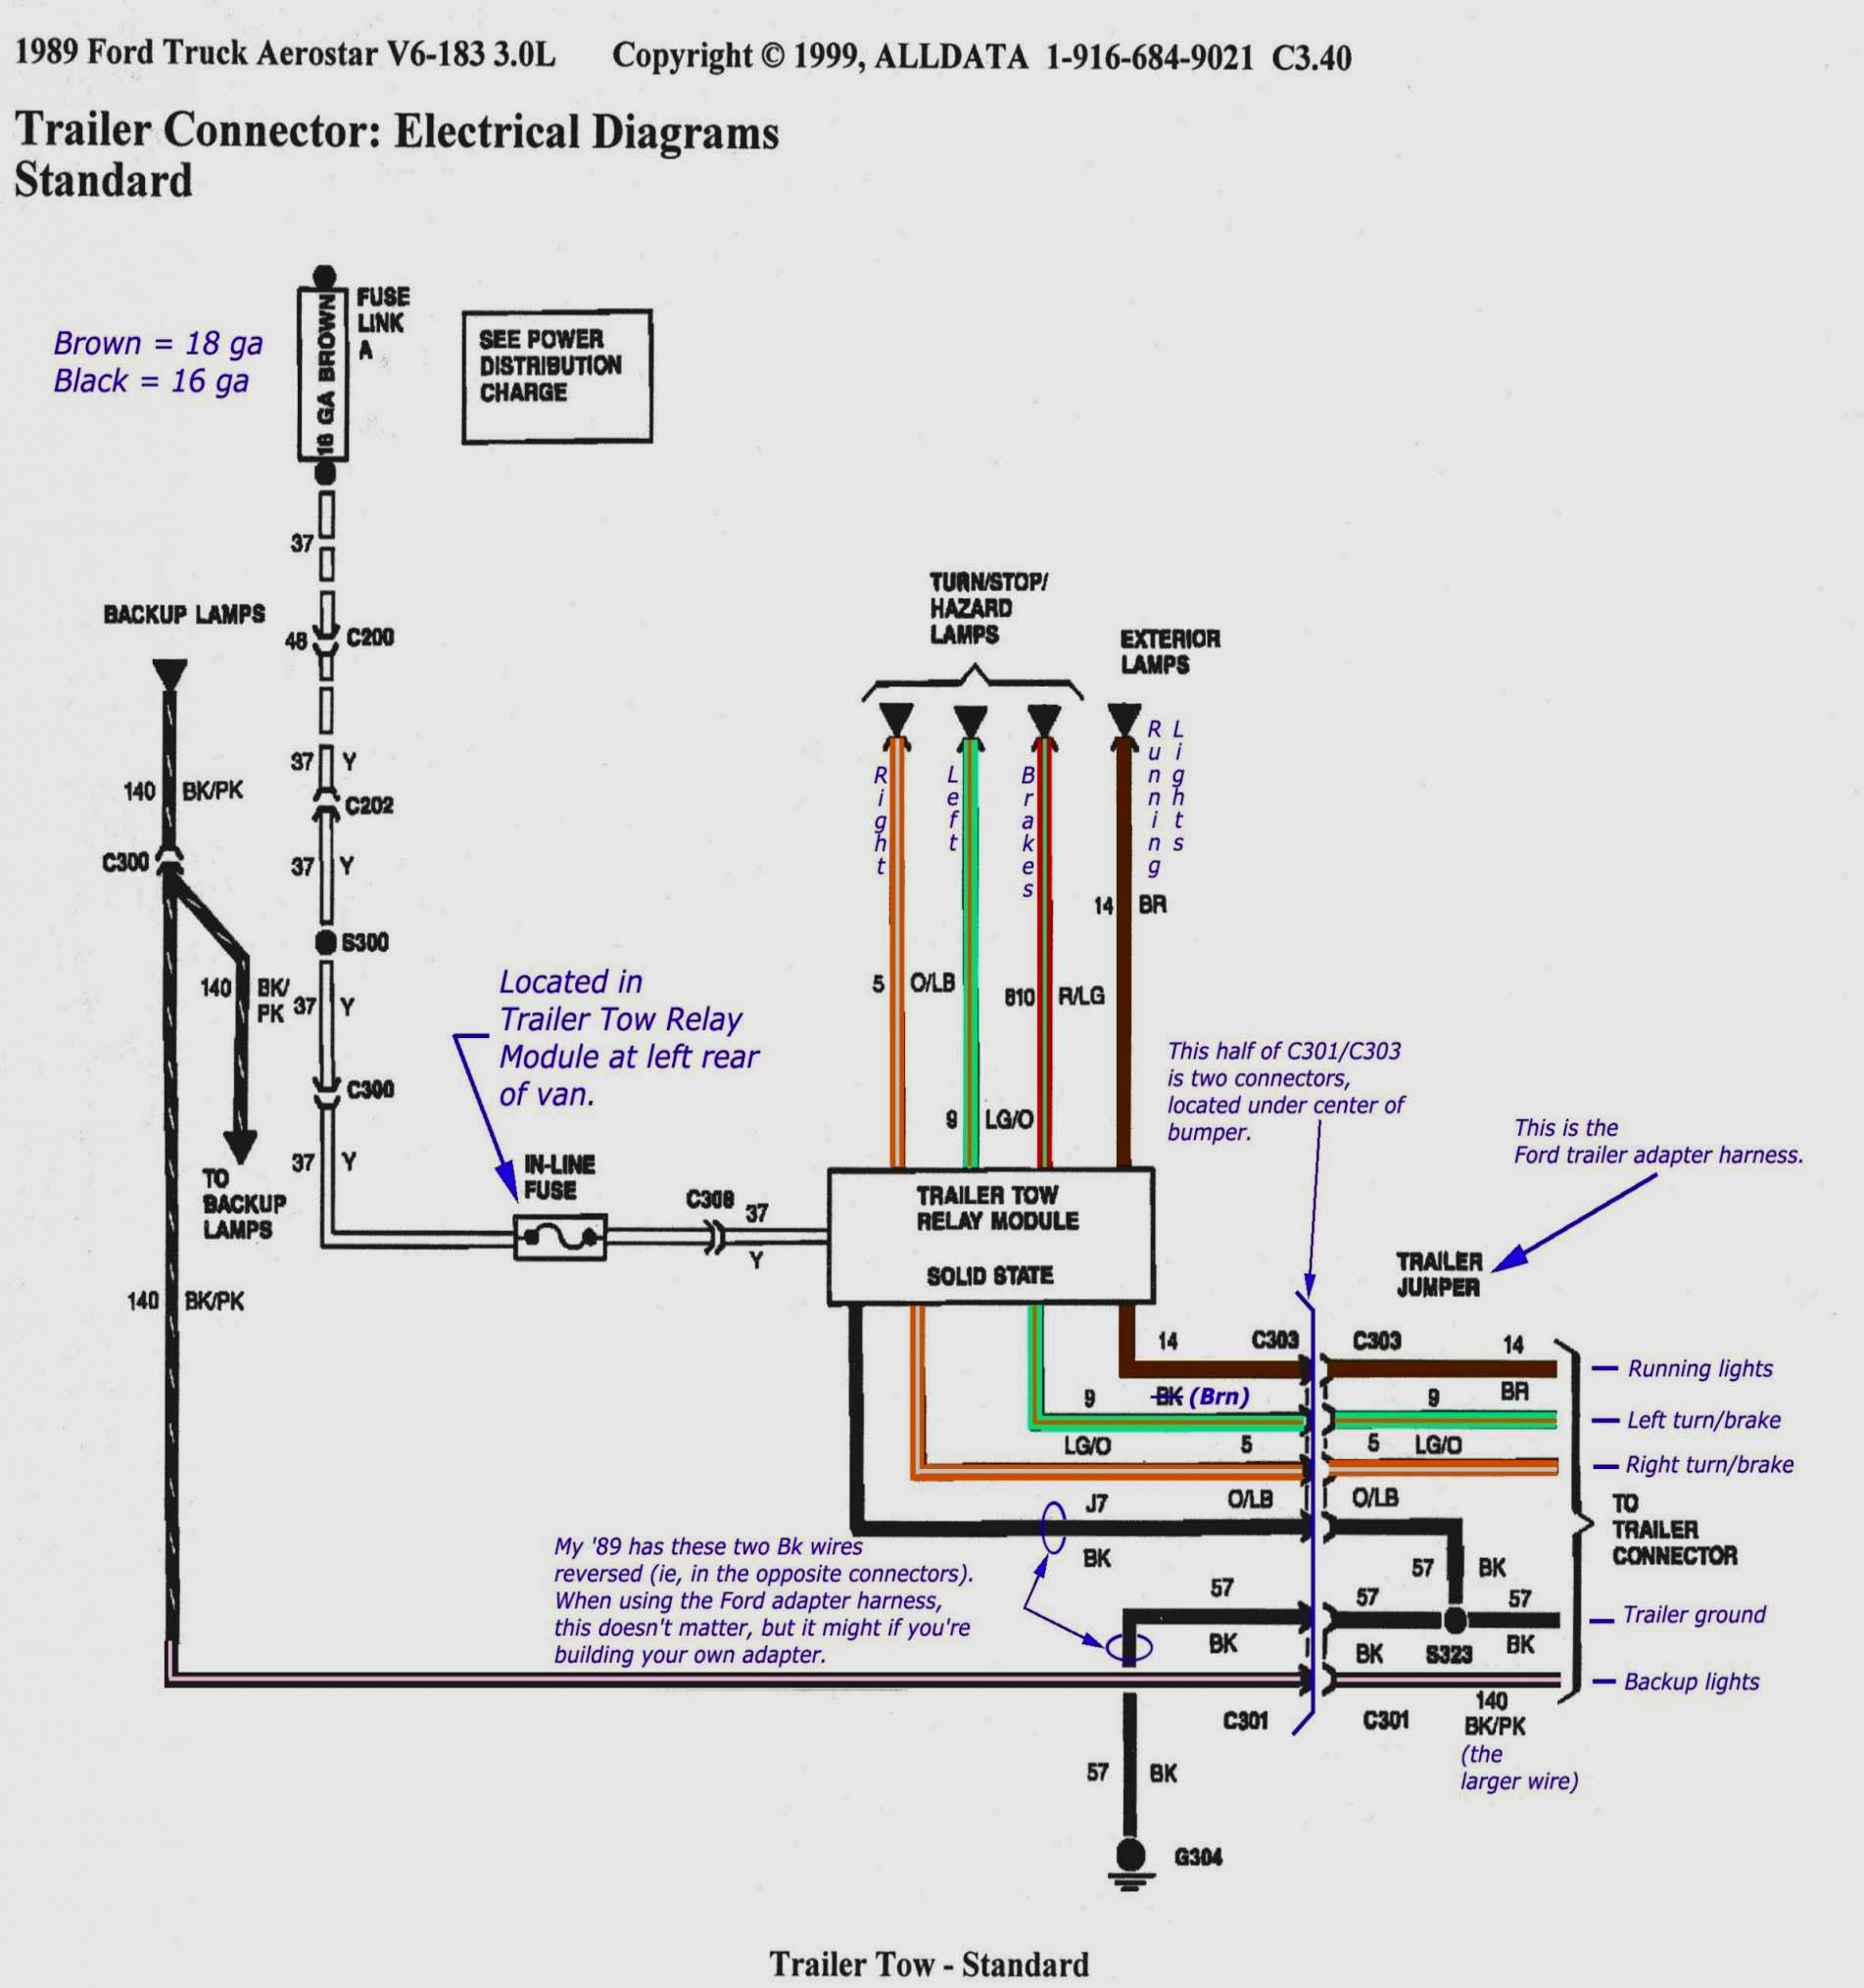 Trailer Wiring Diagram 5 Pin - Trusted Wiring Diagram Online - 4 Pin 5 Wire Trailer Wiring Diagram